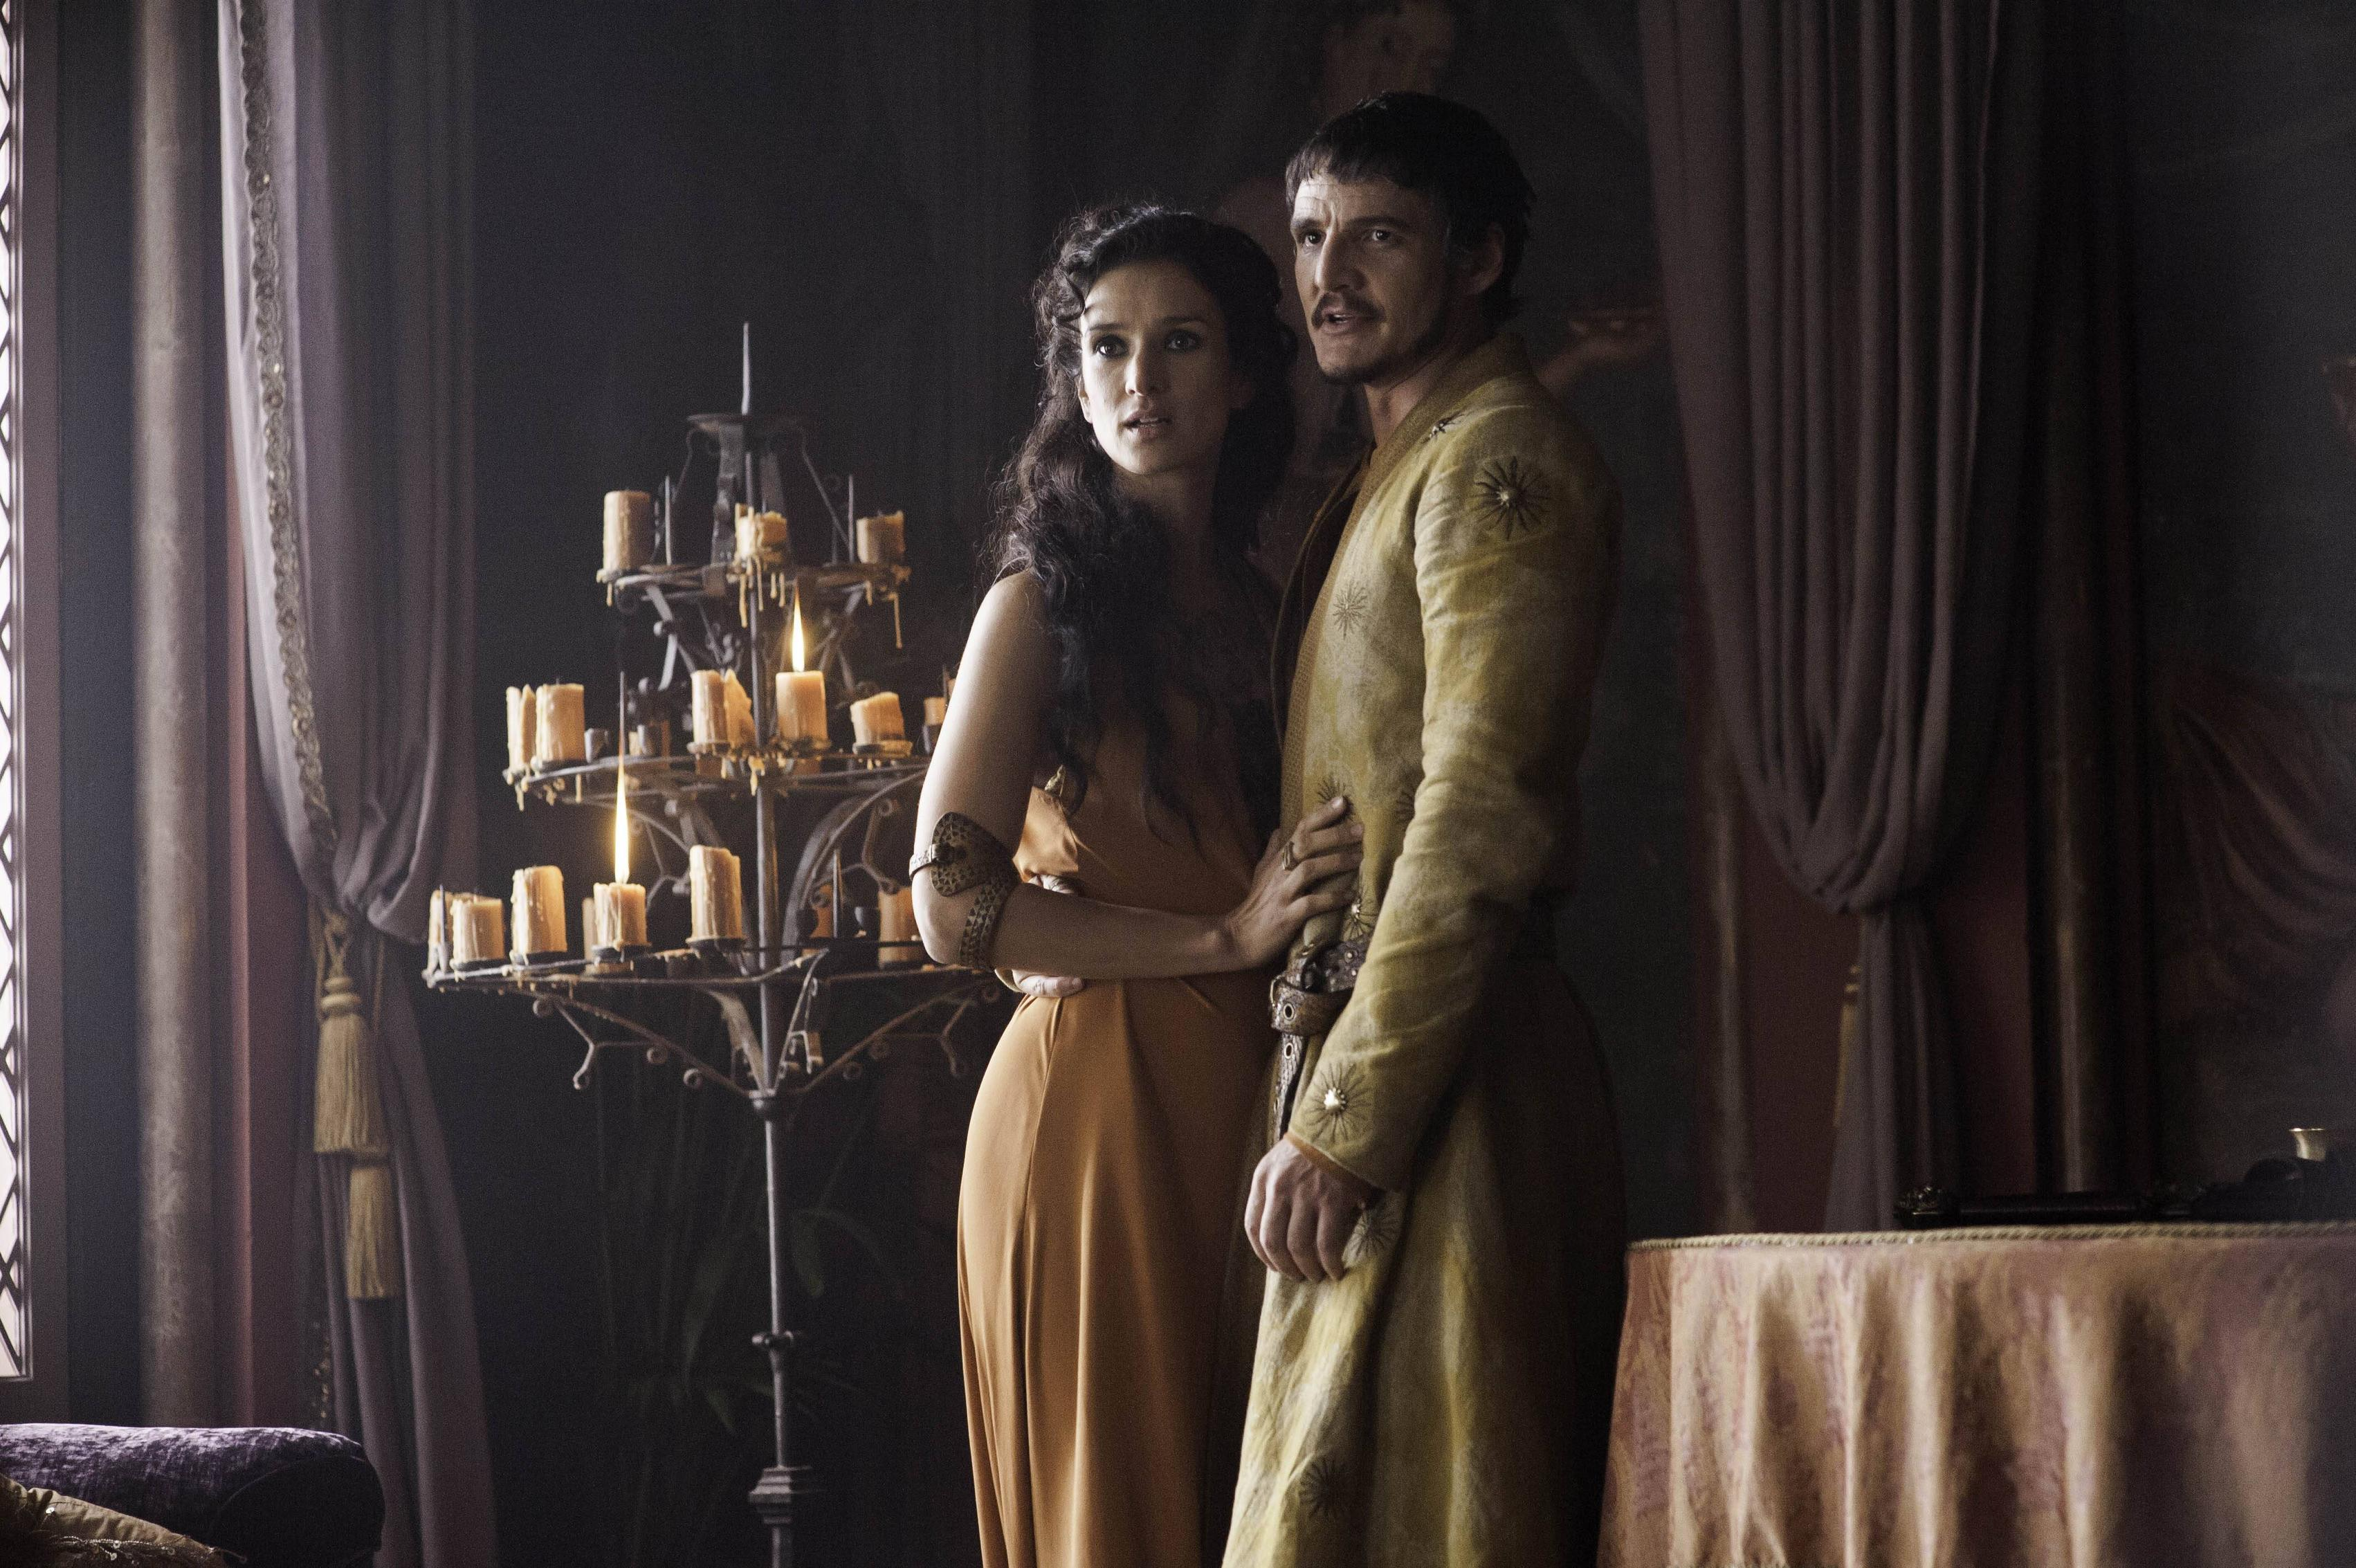 Game of Thrones Ellaria Sand and Oberyn Martell